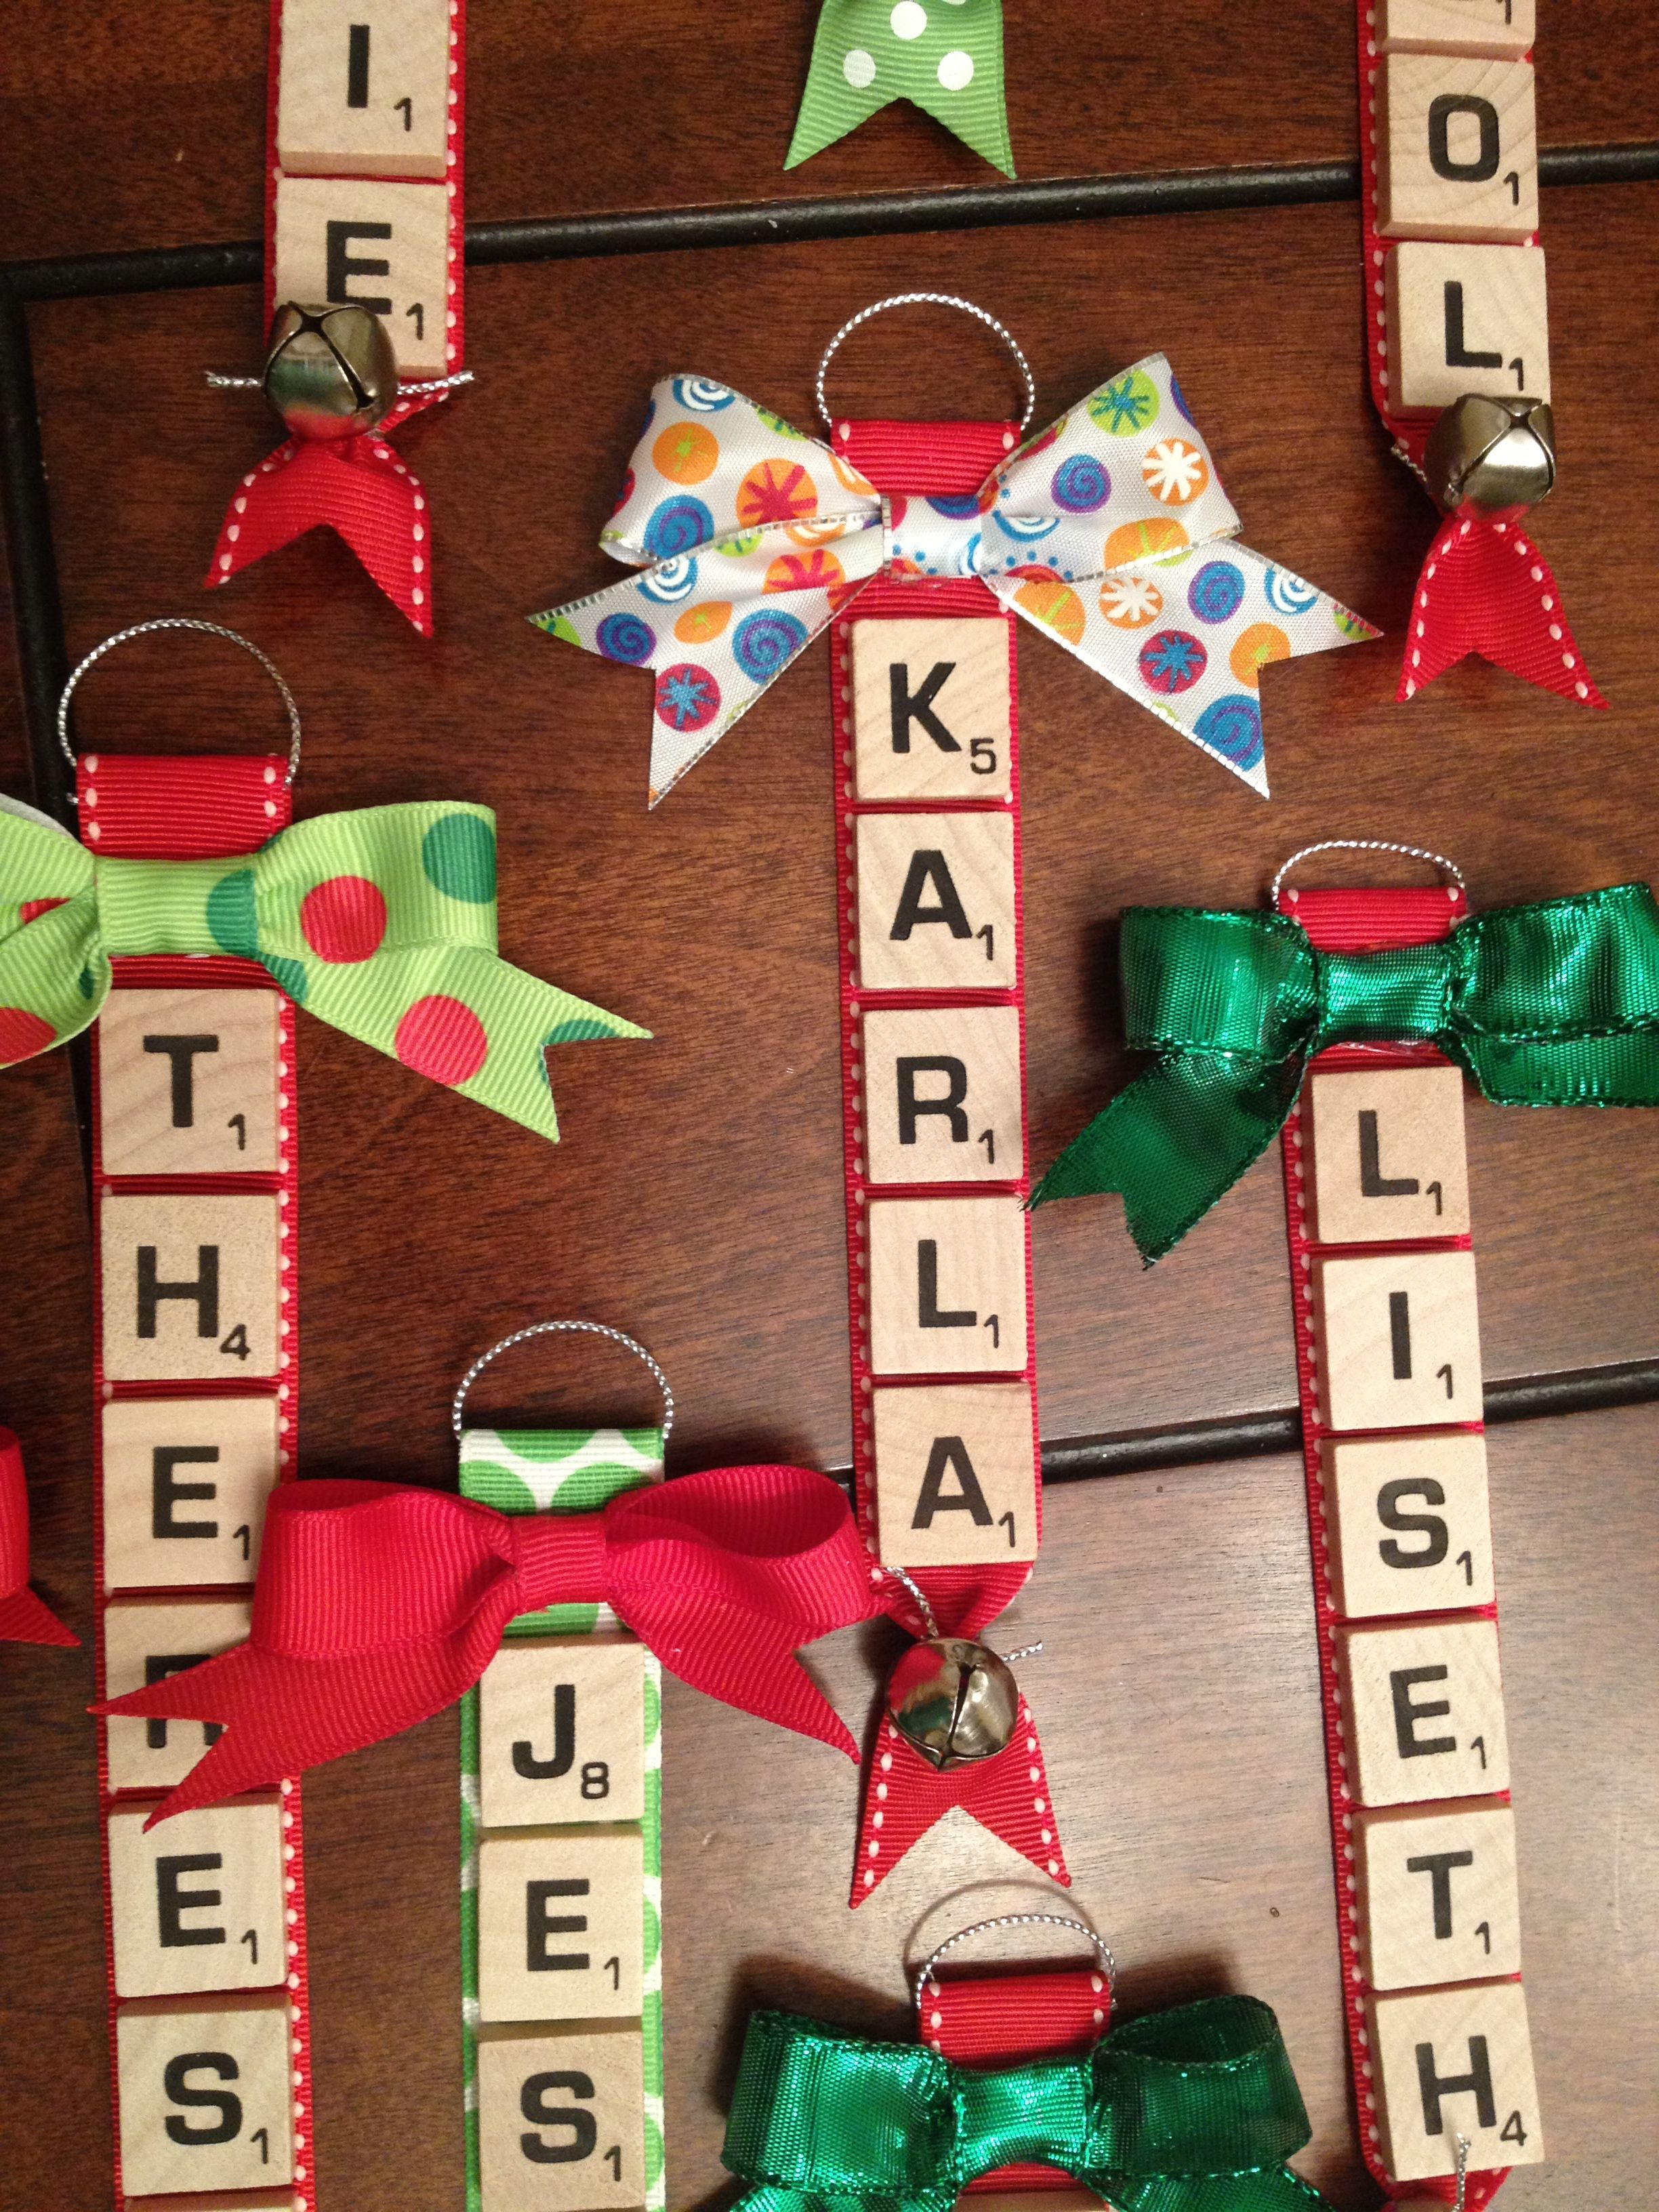 Tile Decorations Classy Personalized Scrabble Tile Ornaments With Bells And Bows Decorating Design